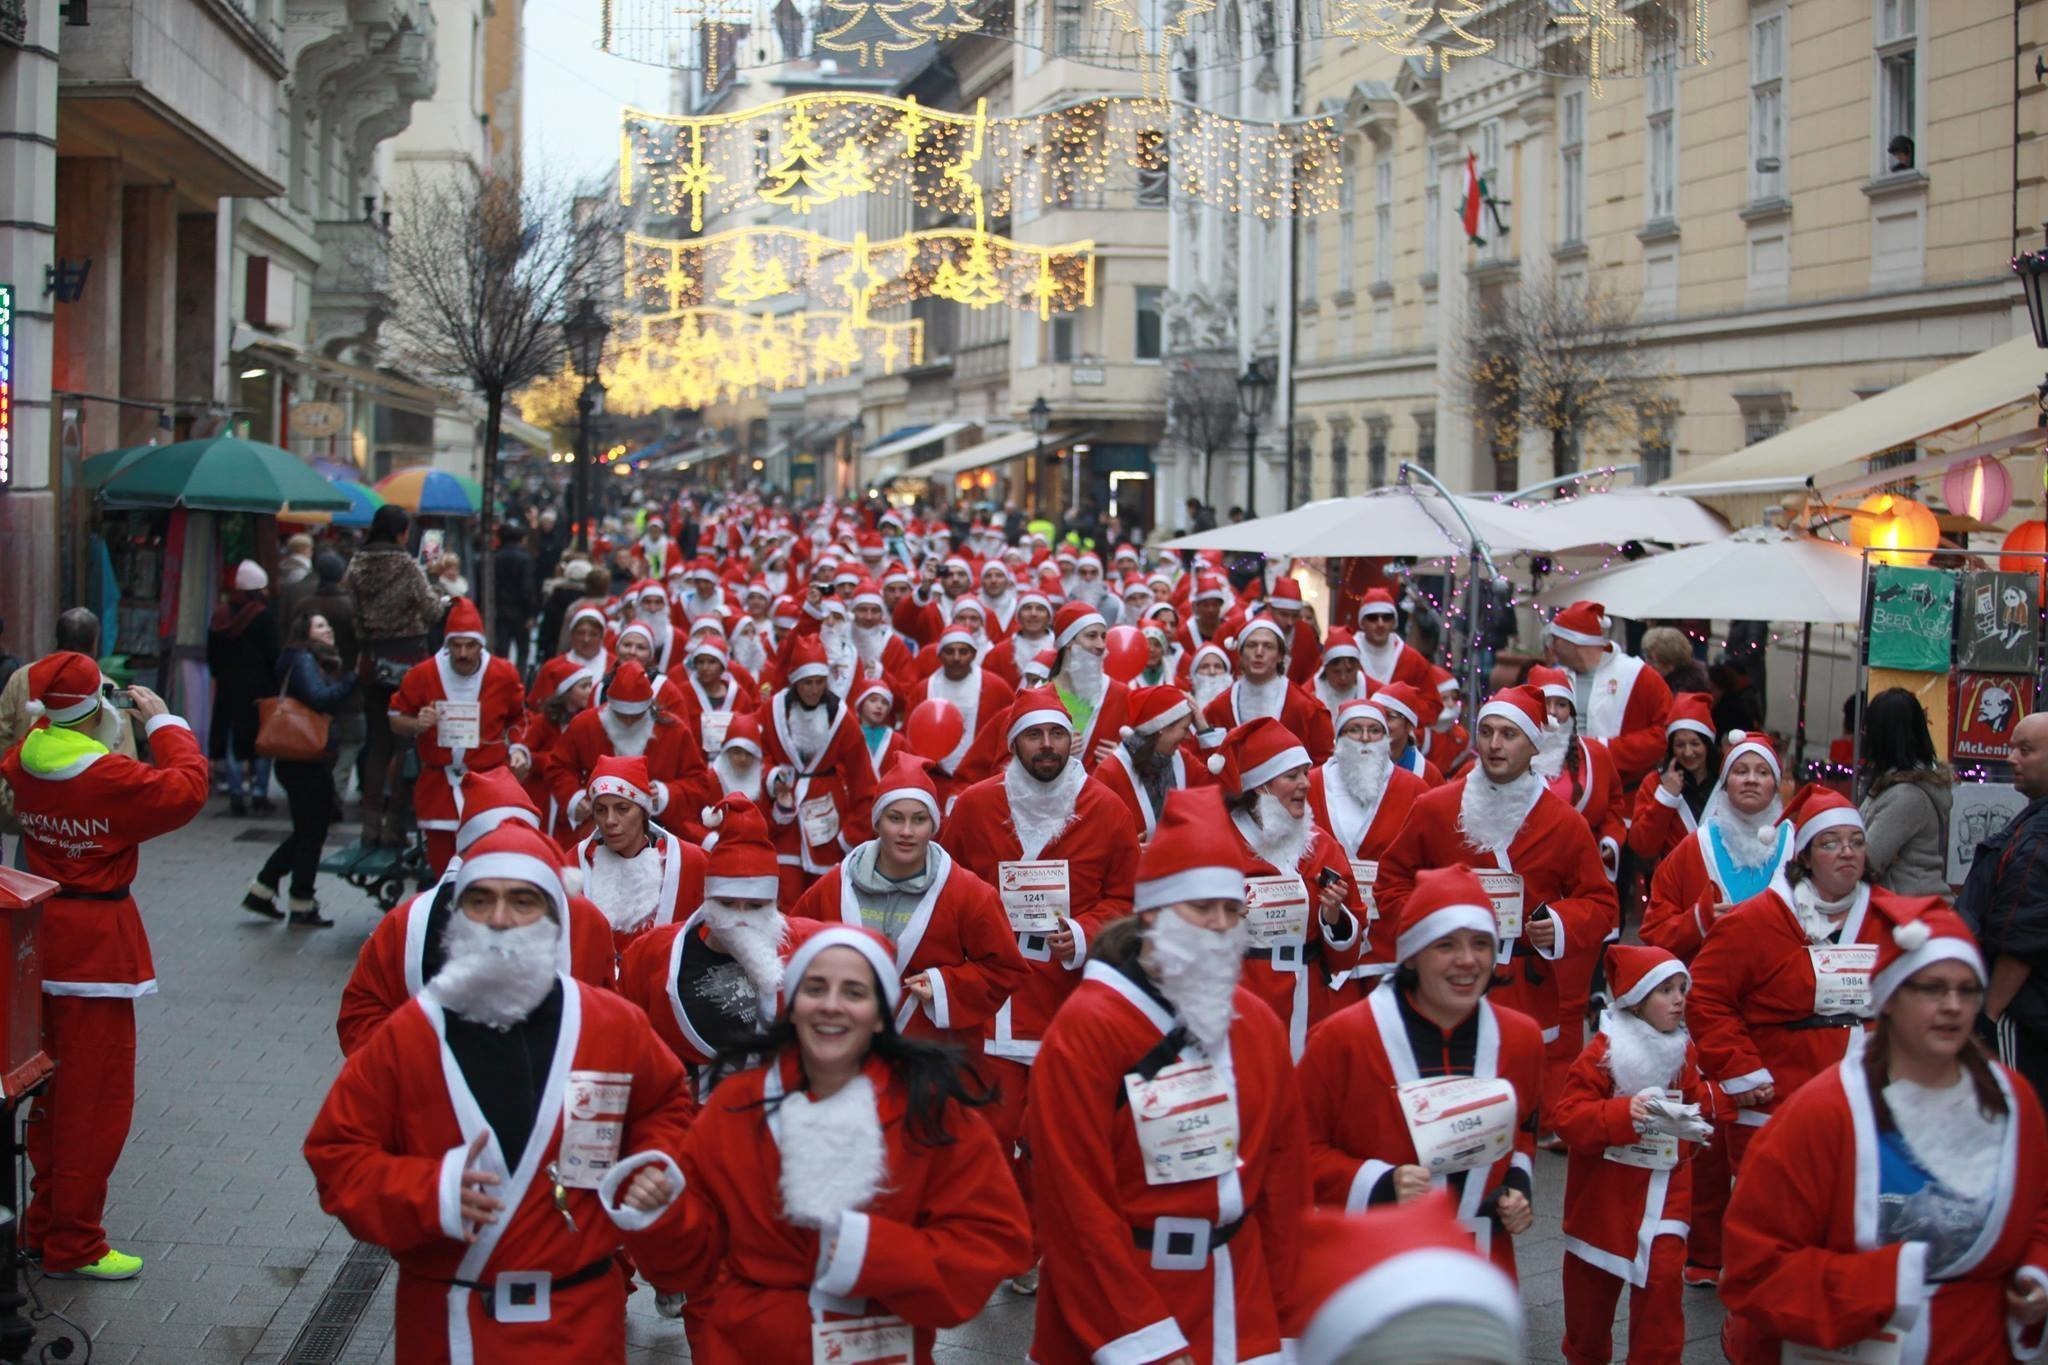 Thousands of runners dressed up as Santa Claus swarming the streets of Budapest on Sunday